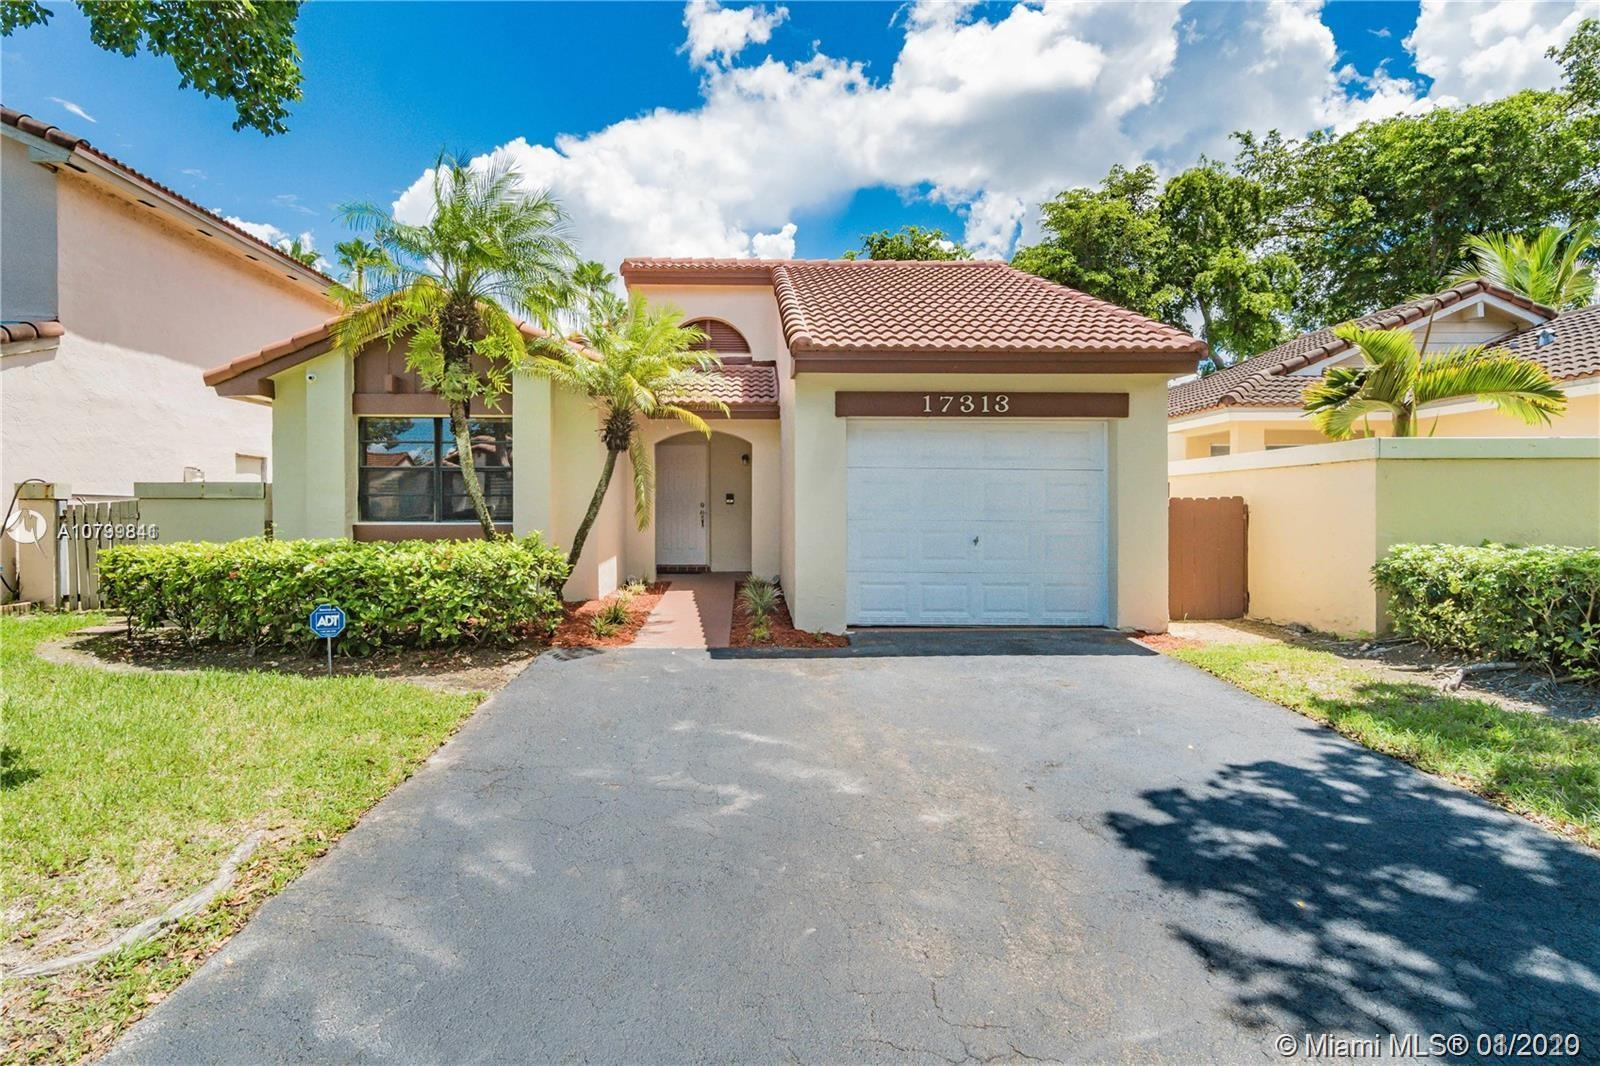 Lovely home located in the prestigious gate community of The Moors in Country club of Miami Lakes in